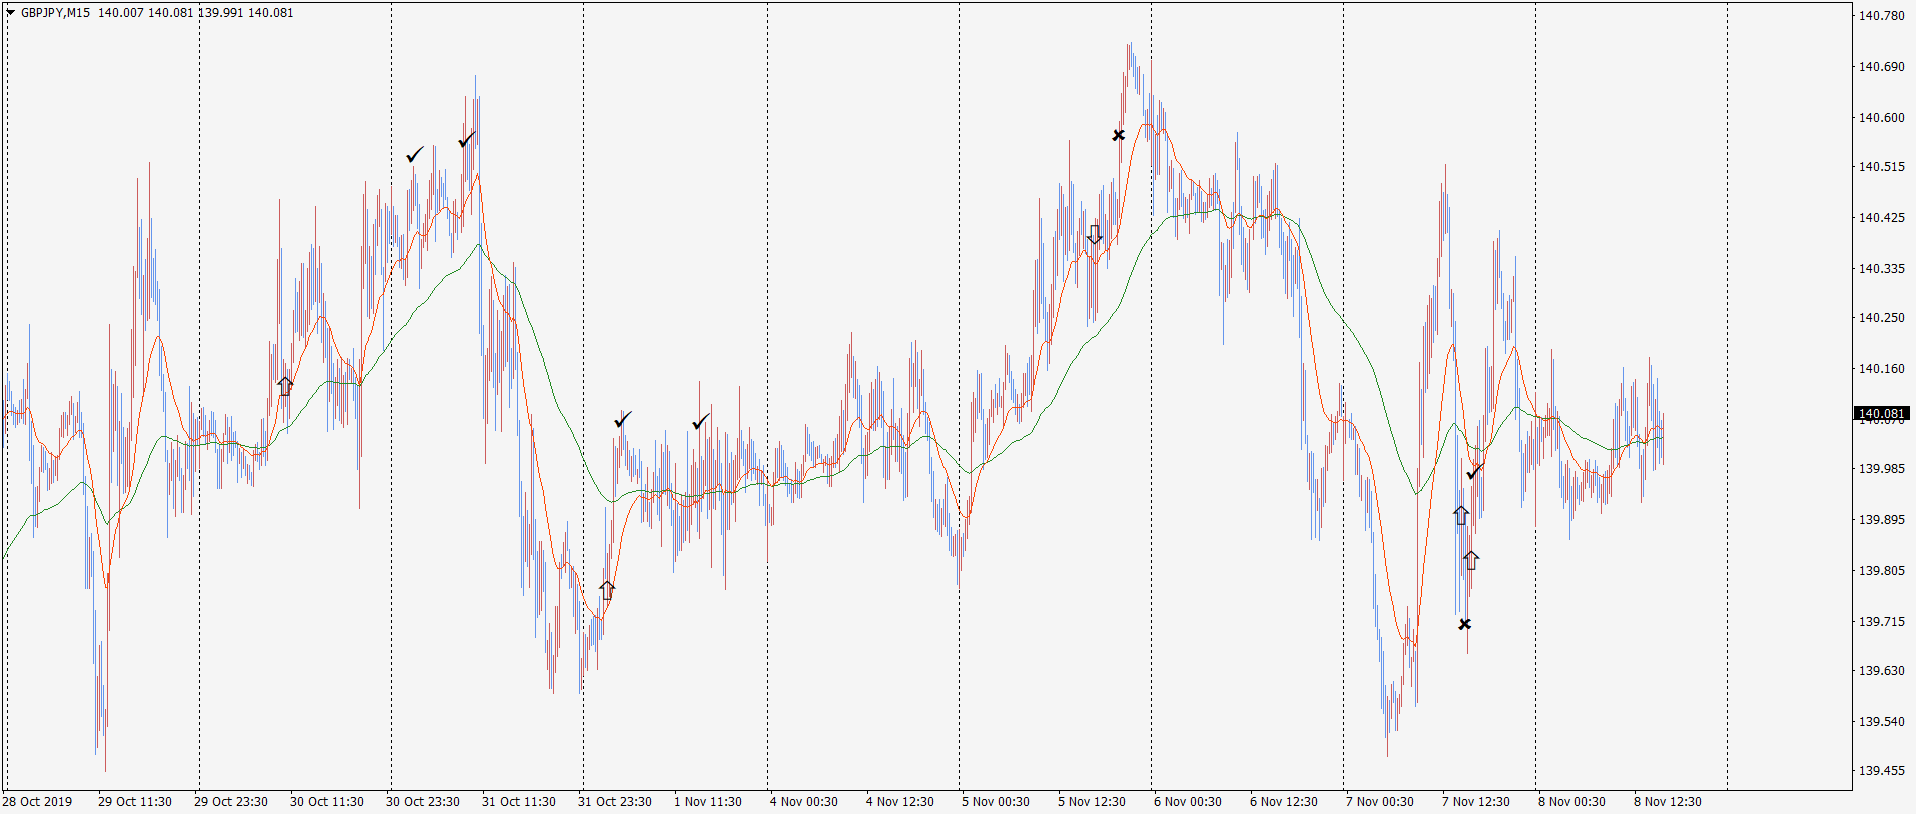 19-11-08-gbpjpy-m15-tradexfin-limited.png